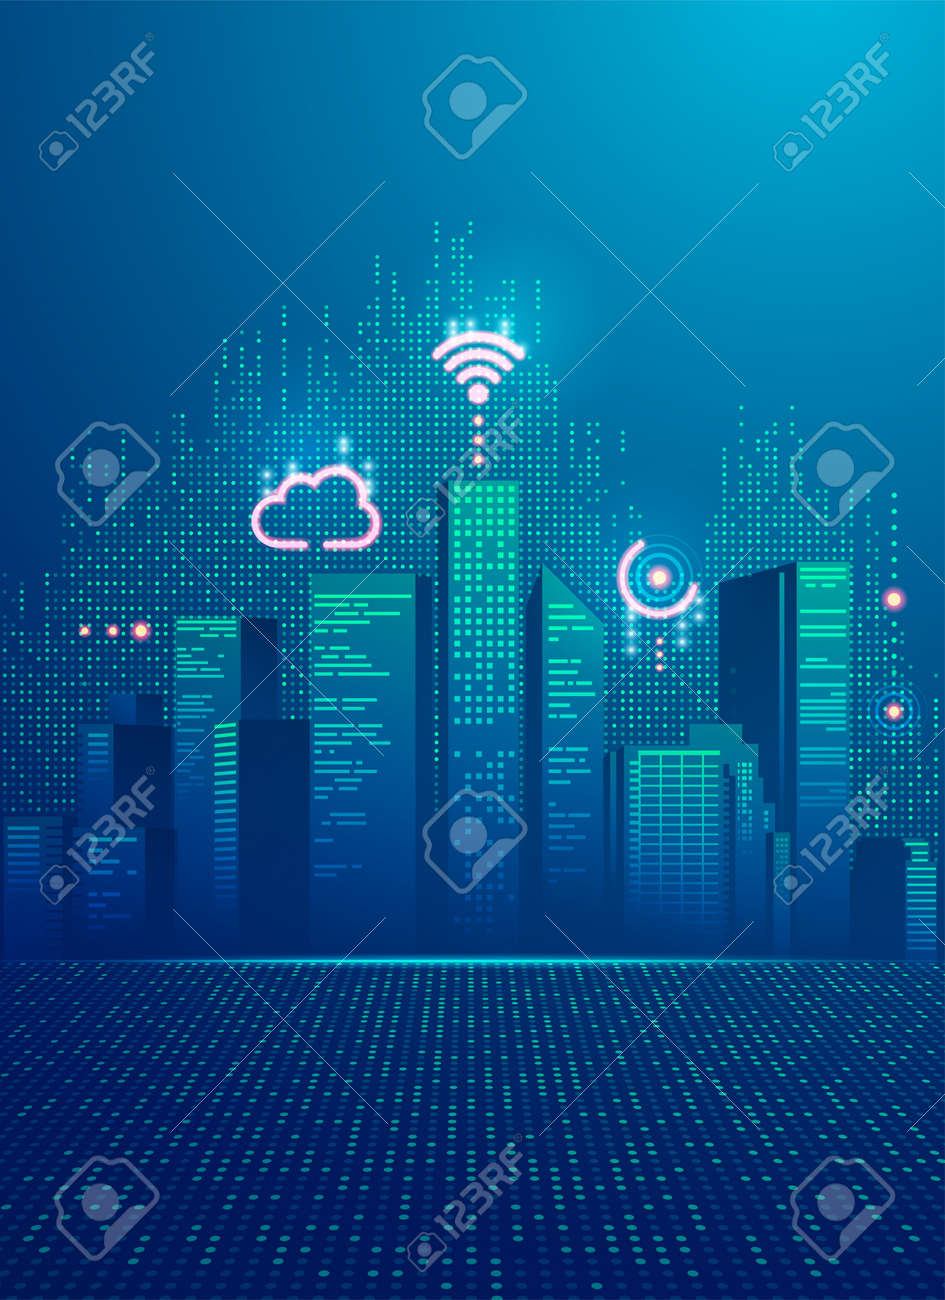 concept of smart city, graphic of buildings with digital technology element - 171348763